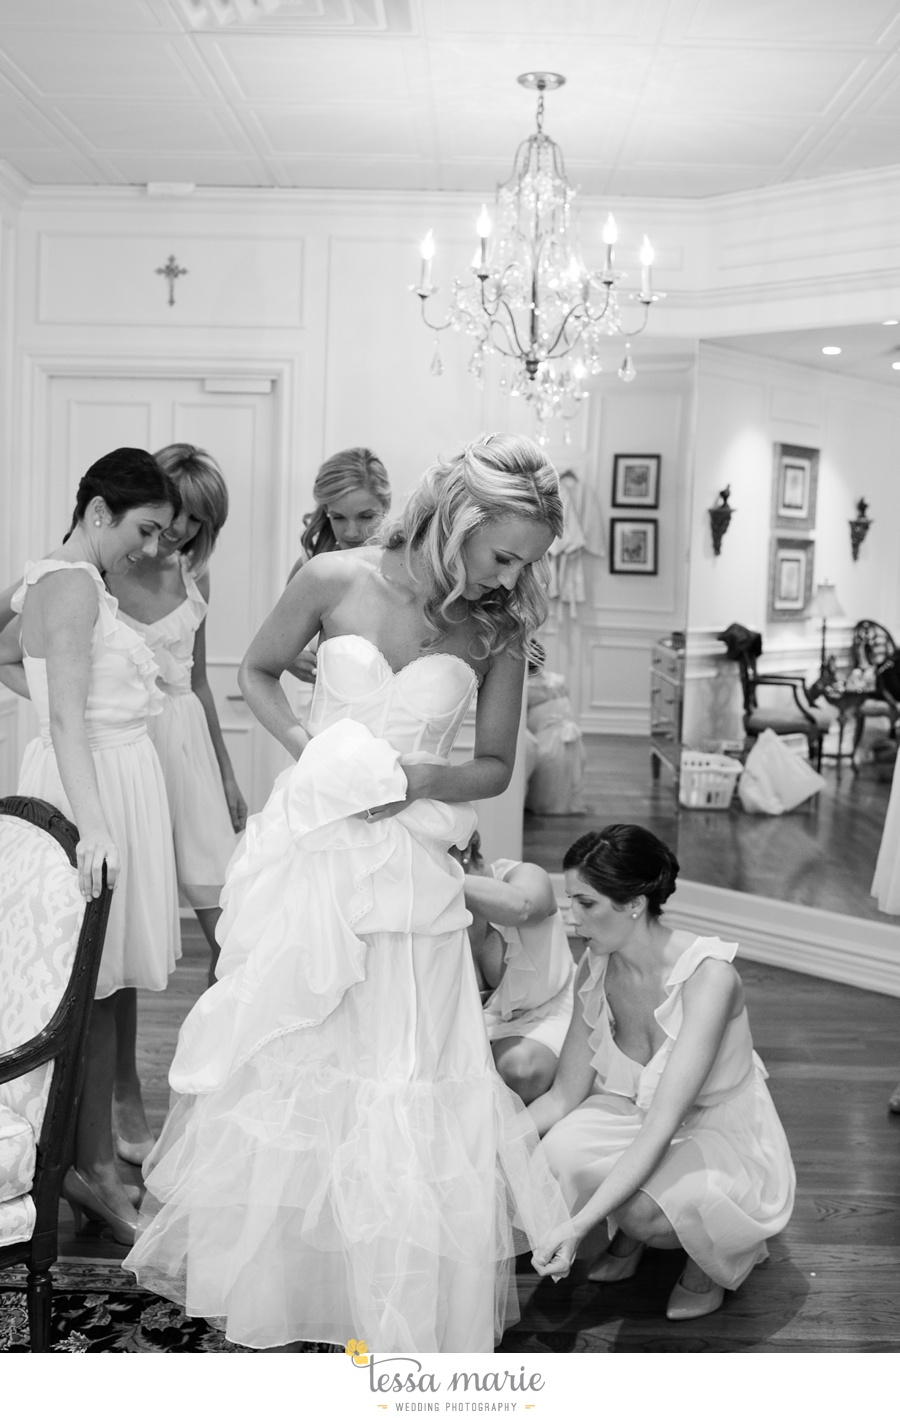 christ_the_king_wedding_pictures_Villa_christina_wedding_tessa_marie_weddings_0013